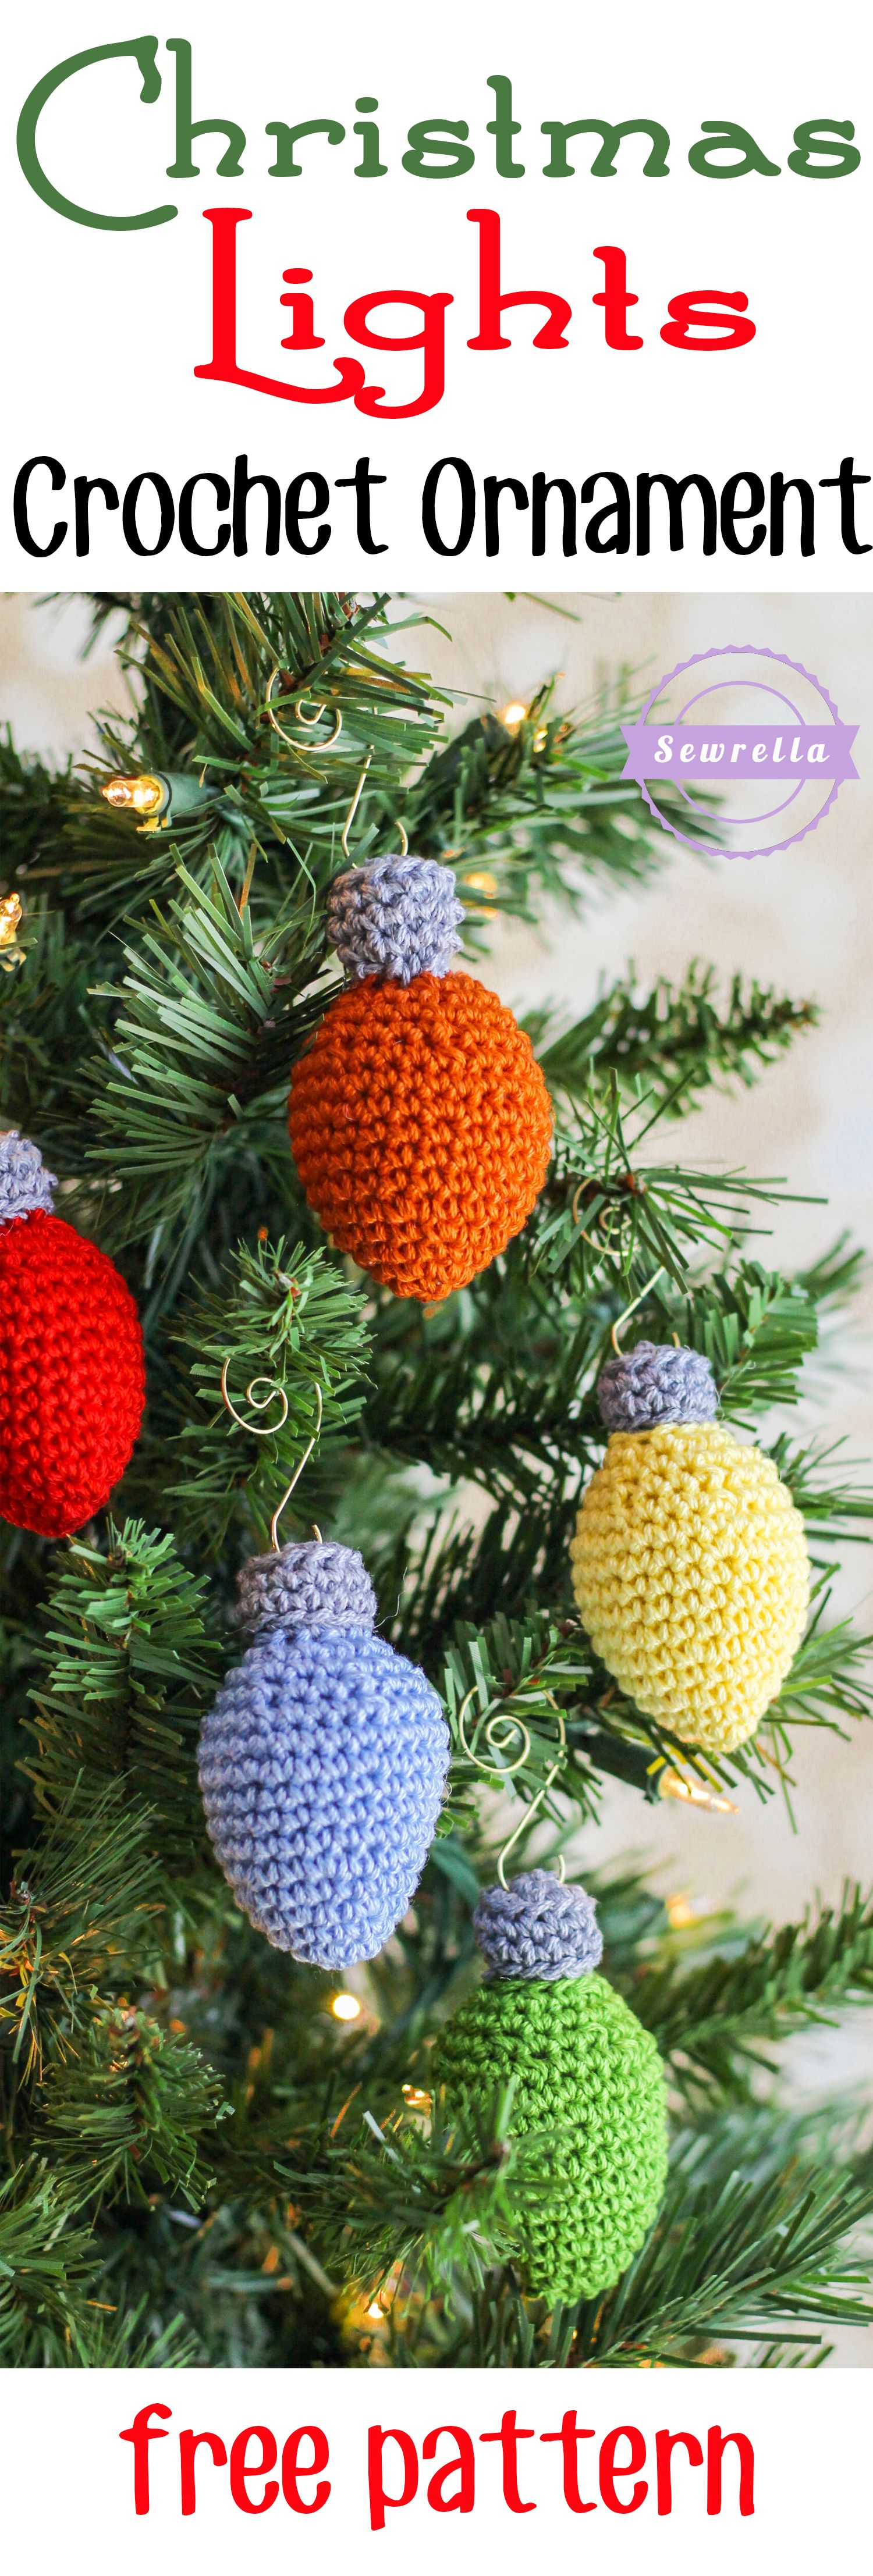 Knitting Pattern Christmas Lights : Christmas Lights Ornament Christmas traditions, Christmas lights and Free p...